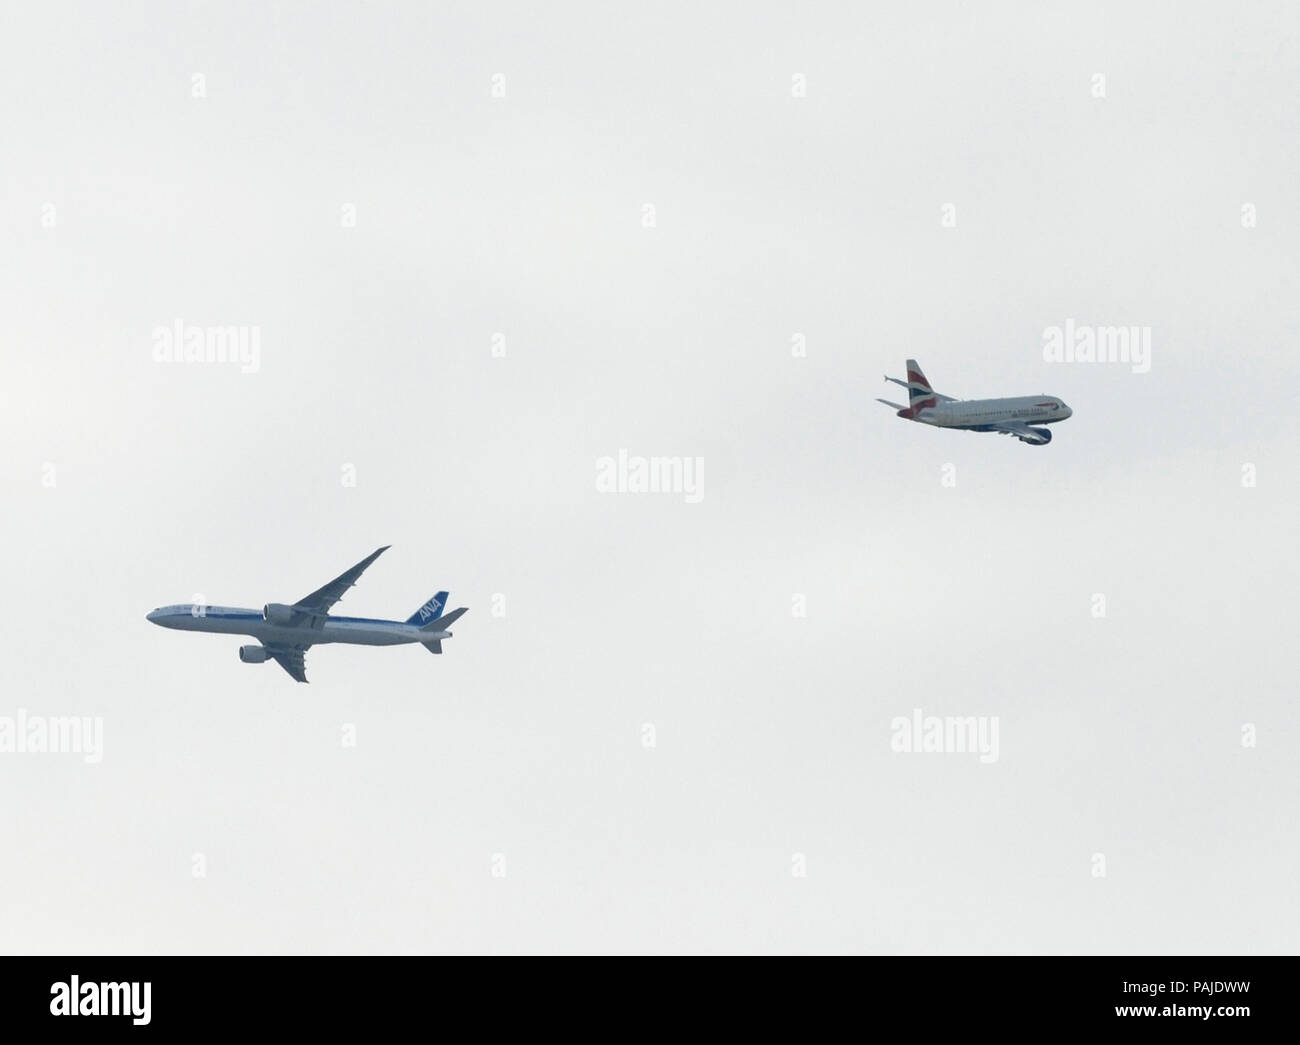 British Airways Airbus A318-100 climbing enroute and an ANA Boeing 777-200 flying enroute - Stock Image